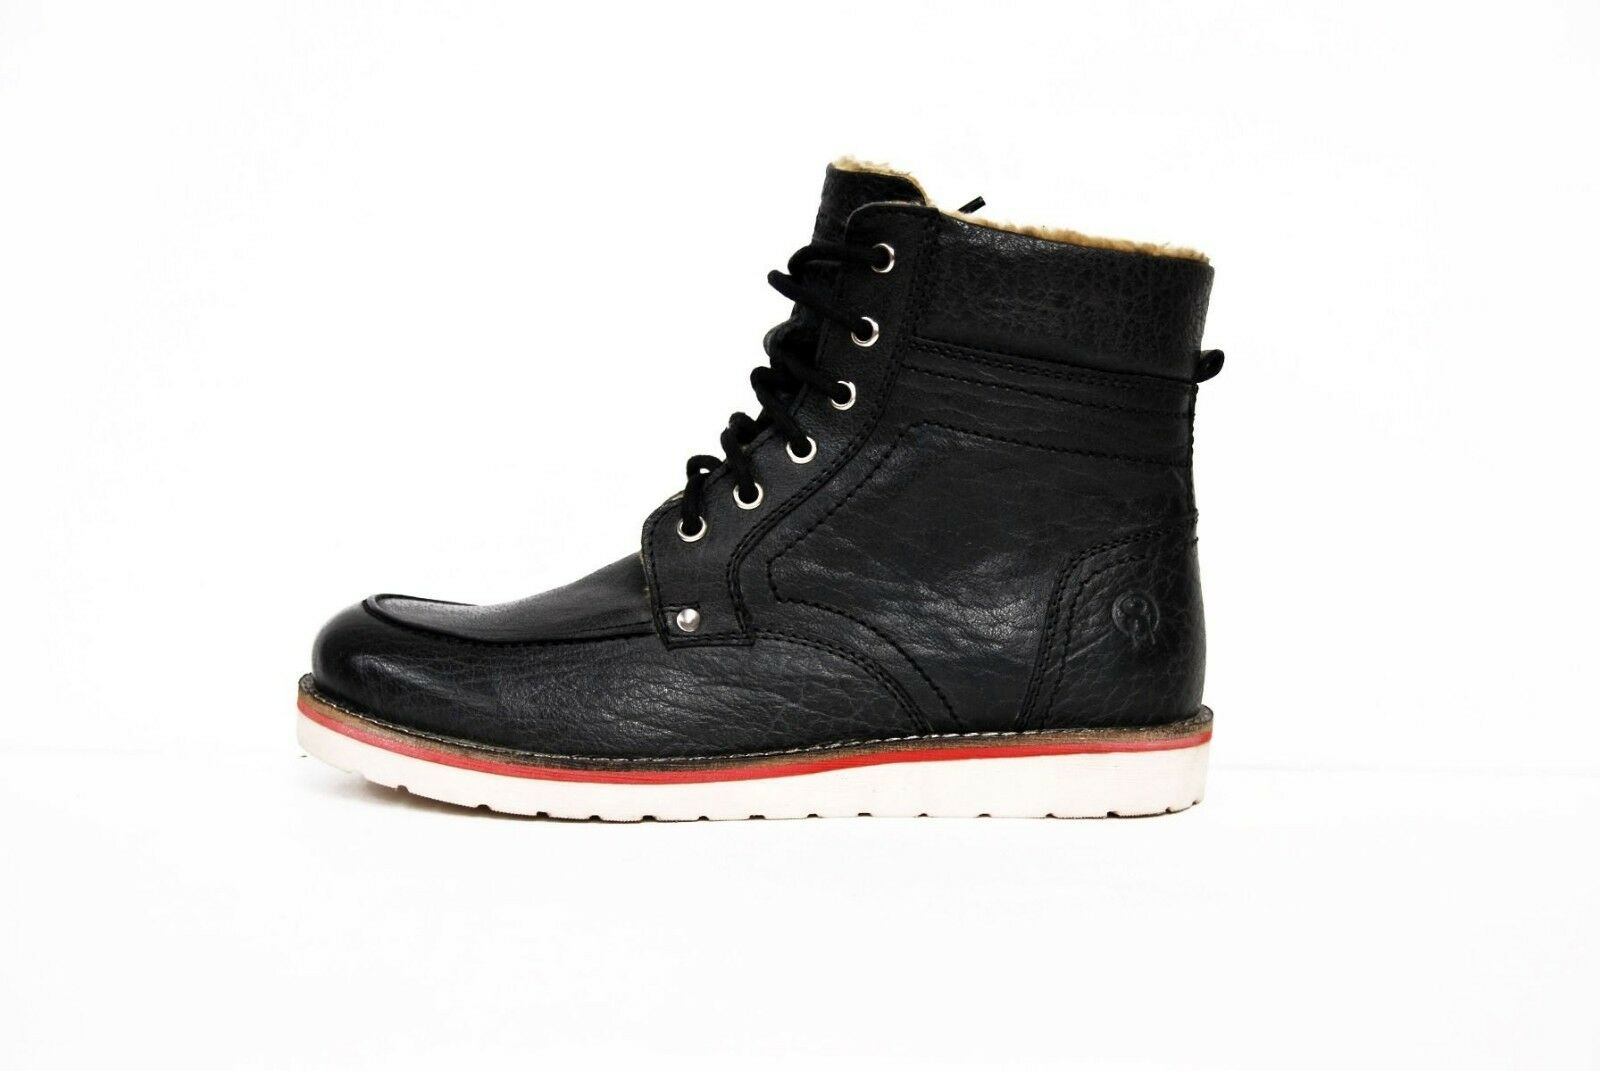 JESSE JAMES WINTER WORK BOOTS - BLACK BRAND NEW IN STOCK